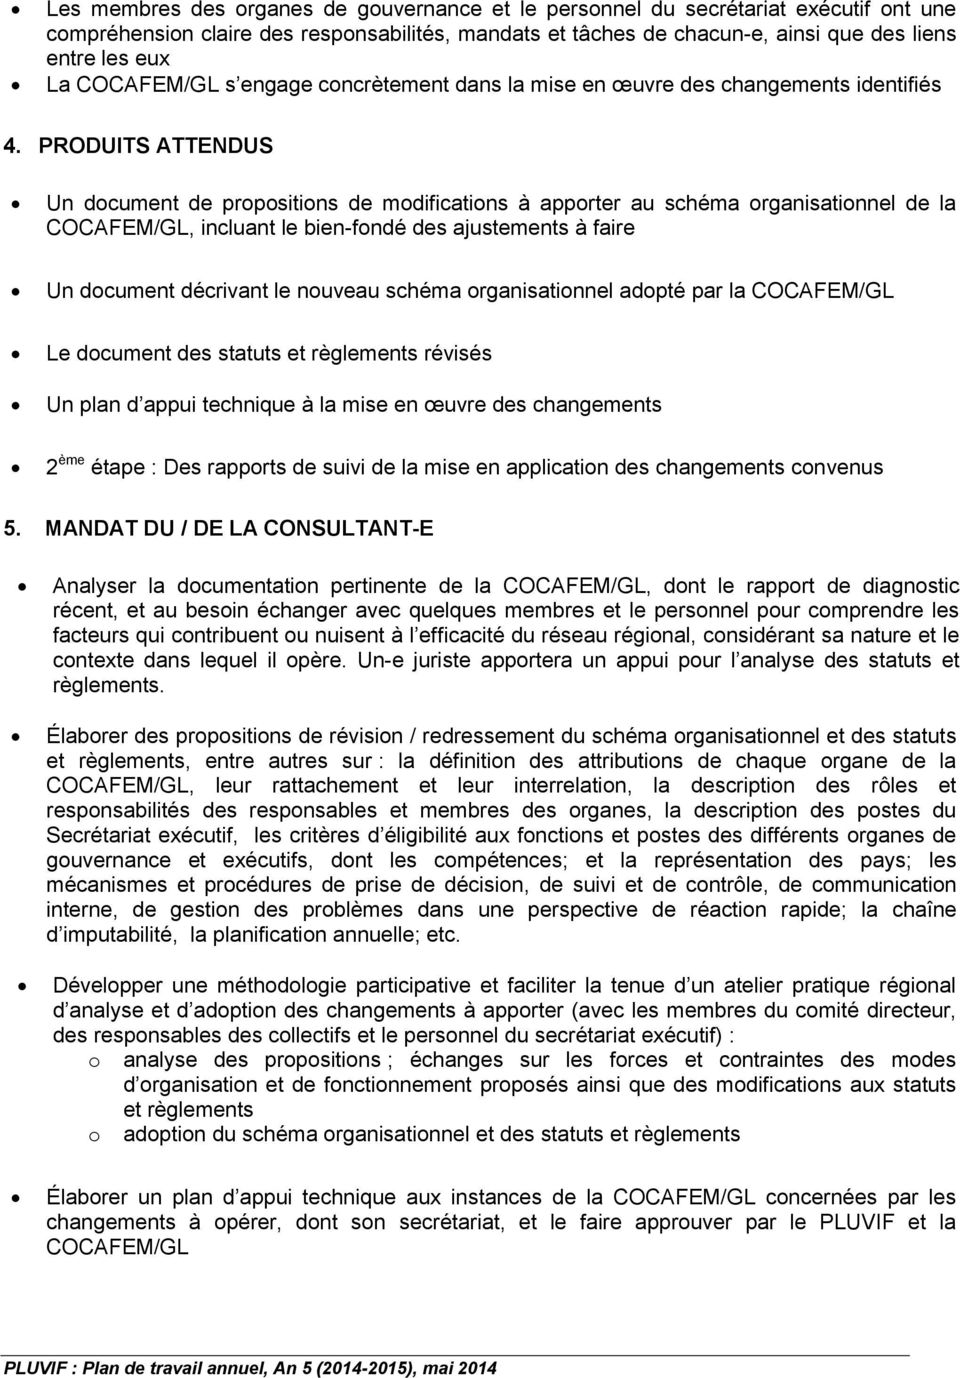 PRODUITS ATTENDUS Un document de propositions de modifications à apporter au schéma organisationnel de la COCAFEM/GL, incluant le bien-fondé des ajustements à faire Un document décrivant le nouveau